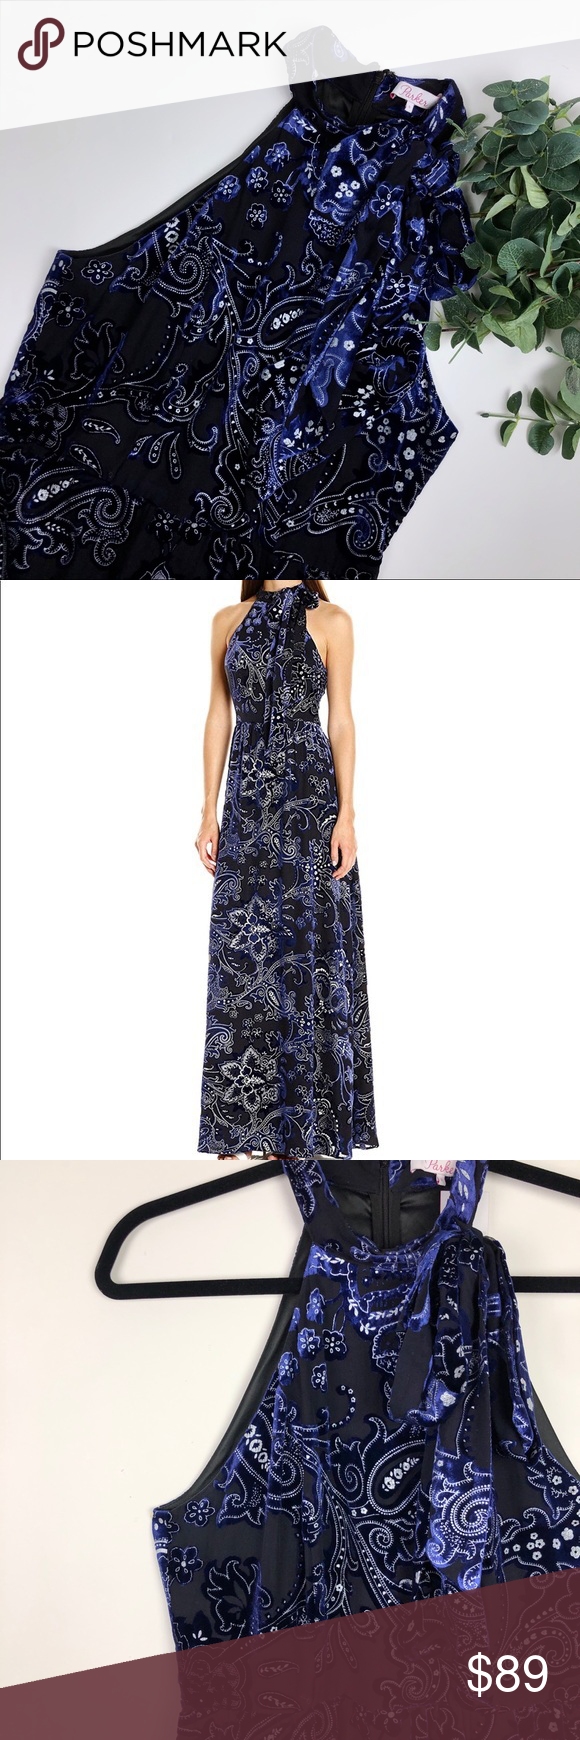 228039717f Parker Janelle Velvet Paisley Floral Maxi Dress Brand new with tags!  Measurements available upon request